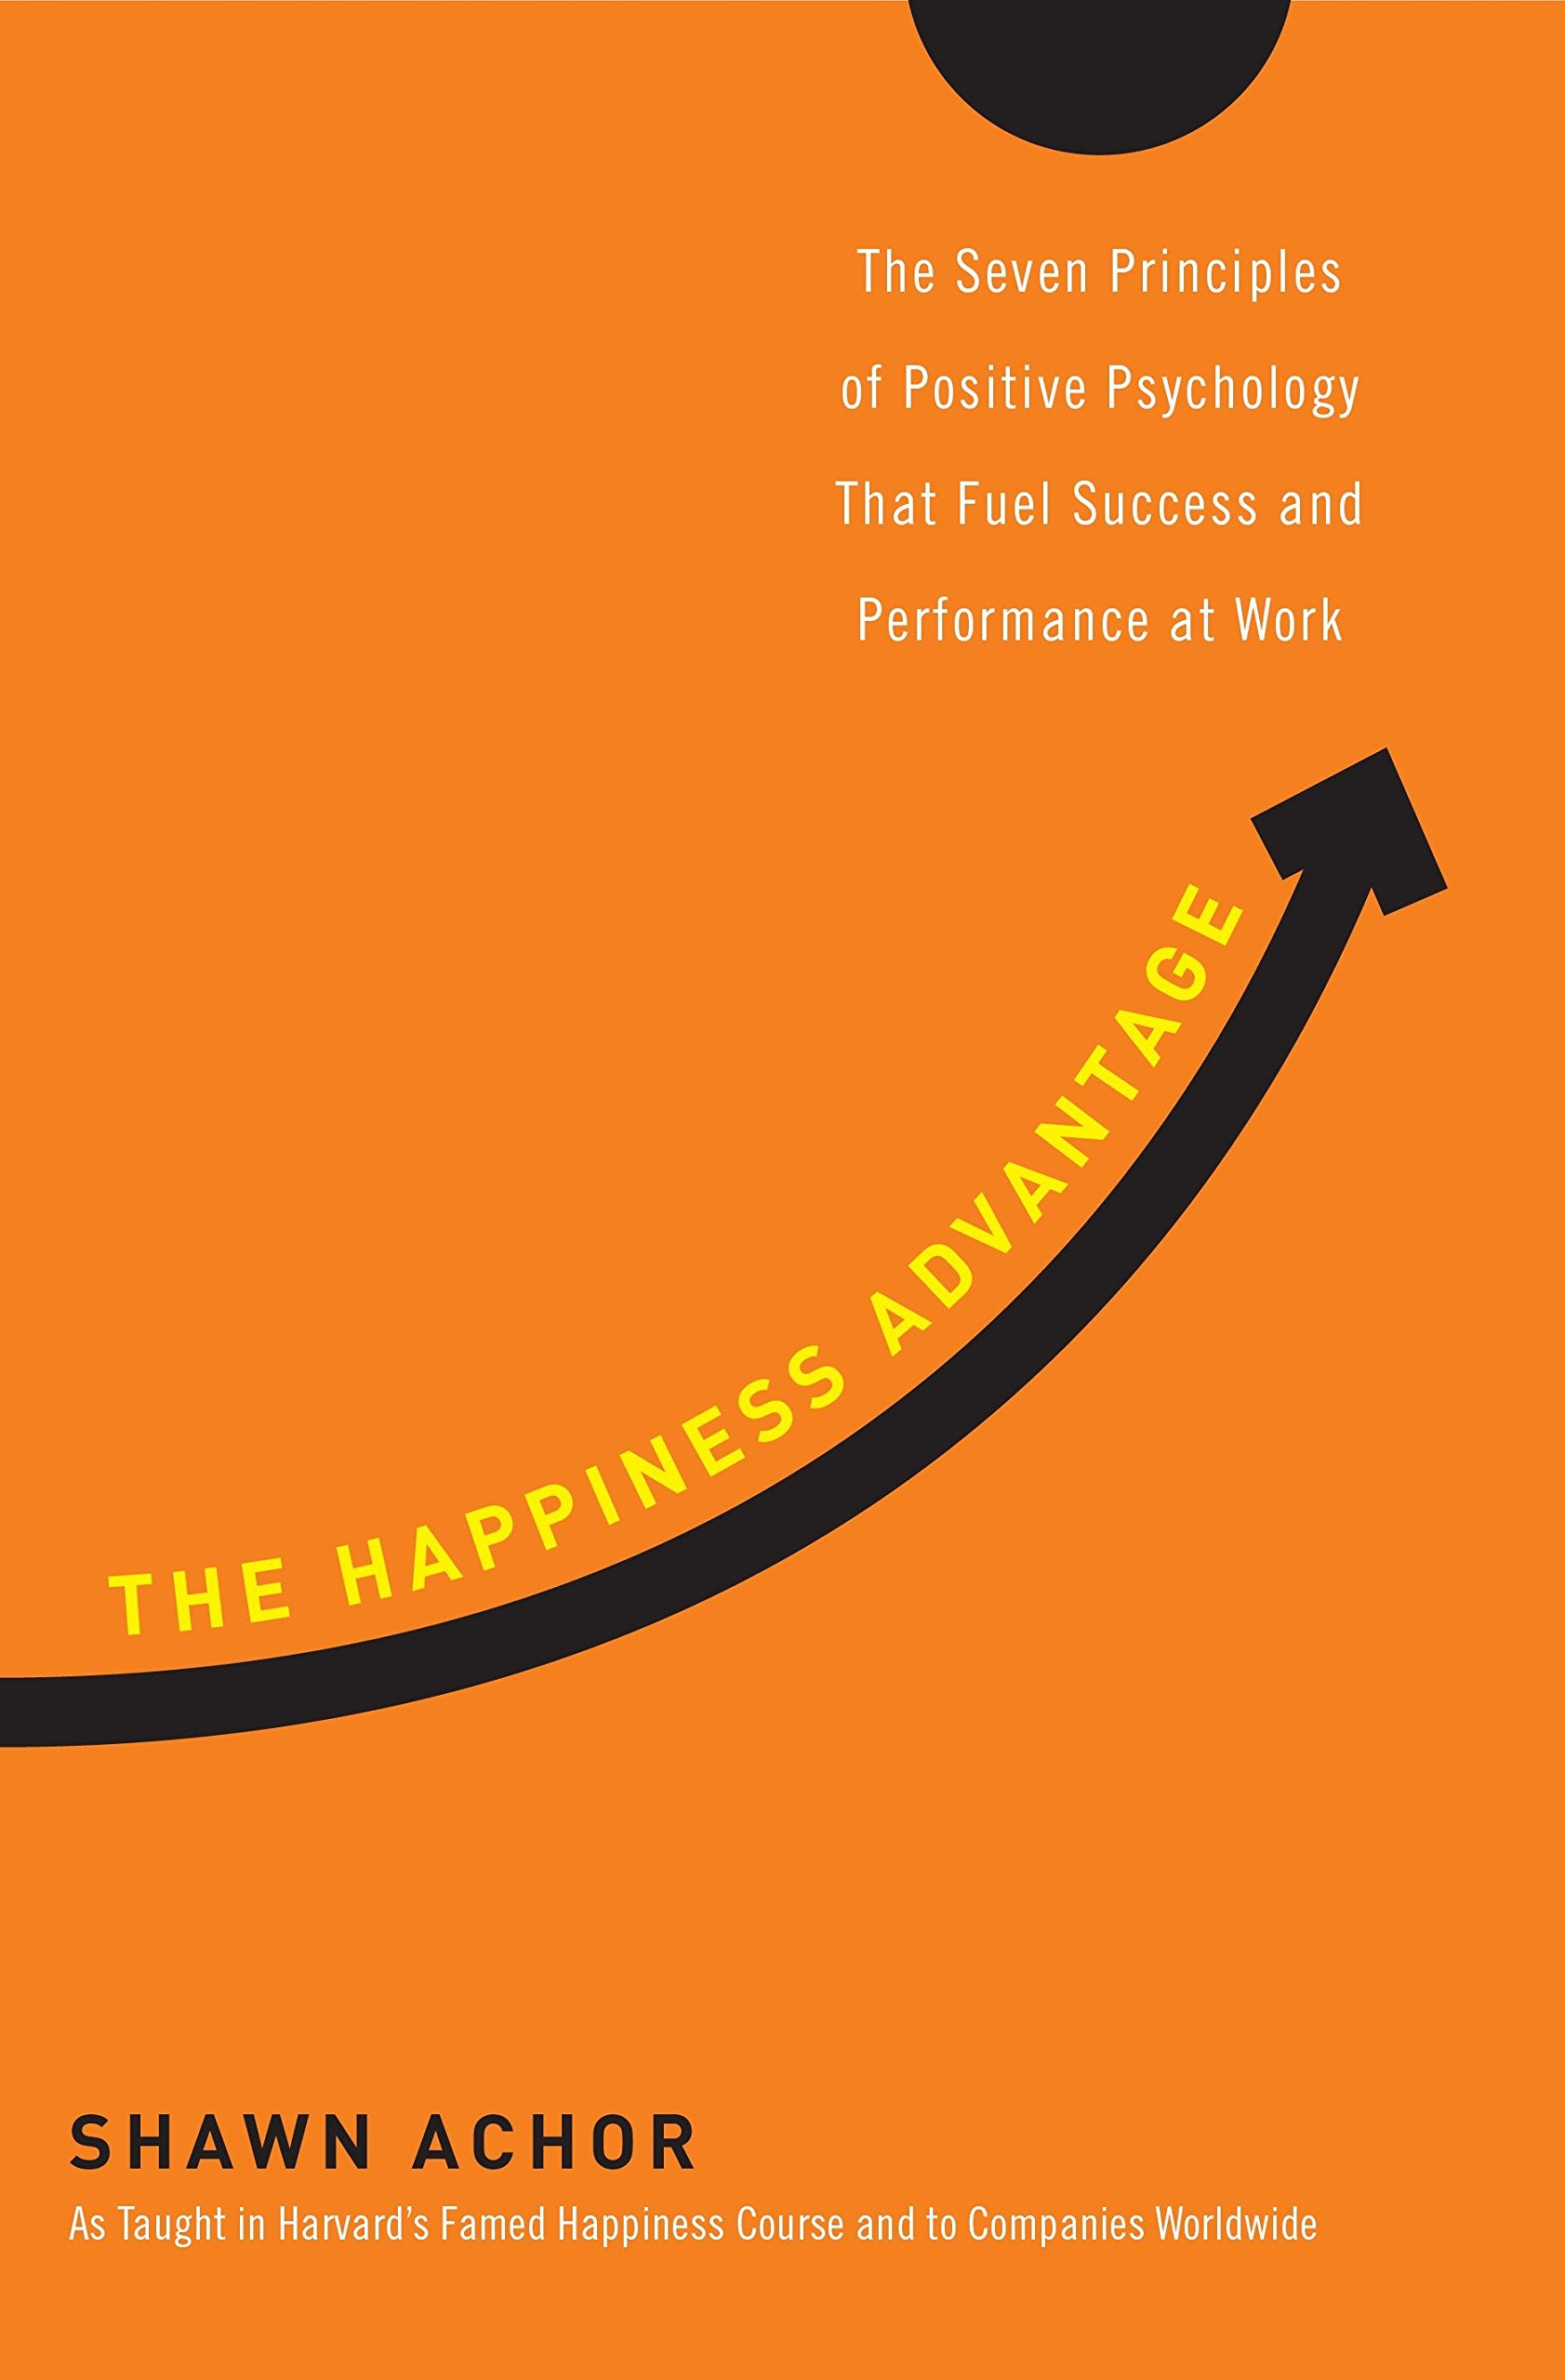 The Happiness Advantange by Shawn Achor